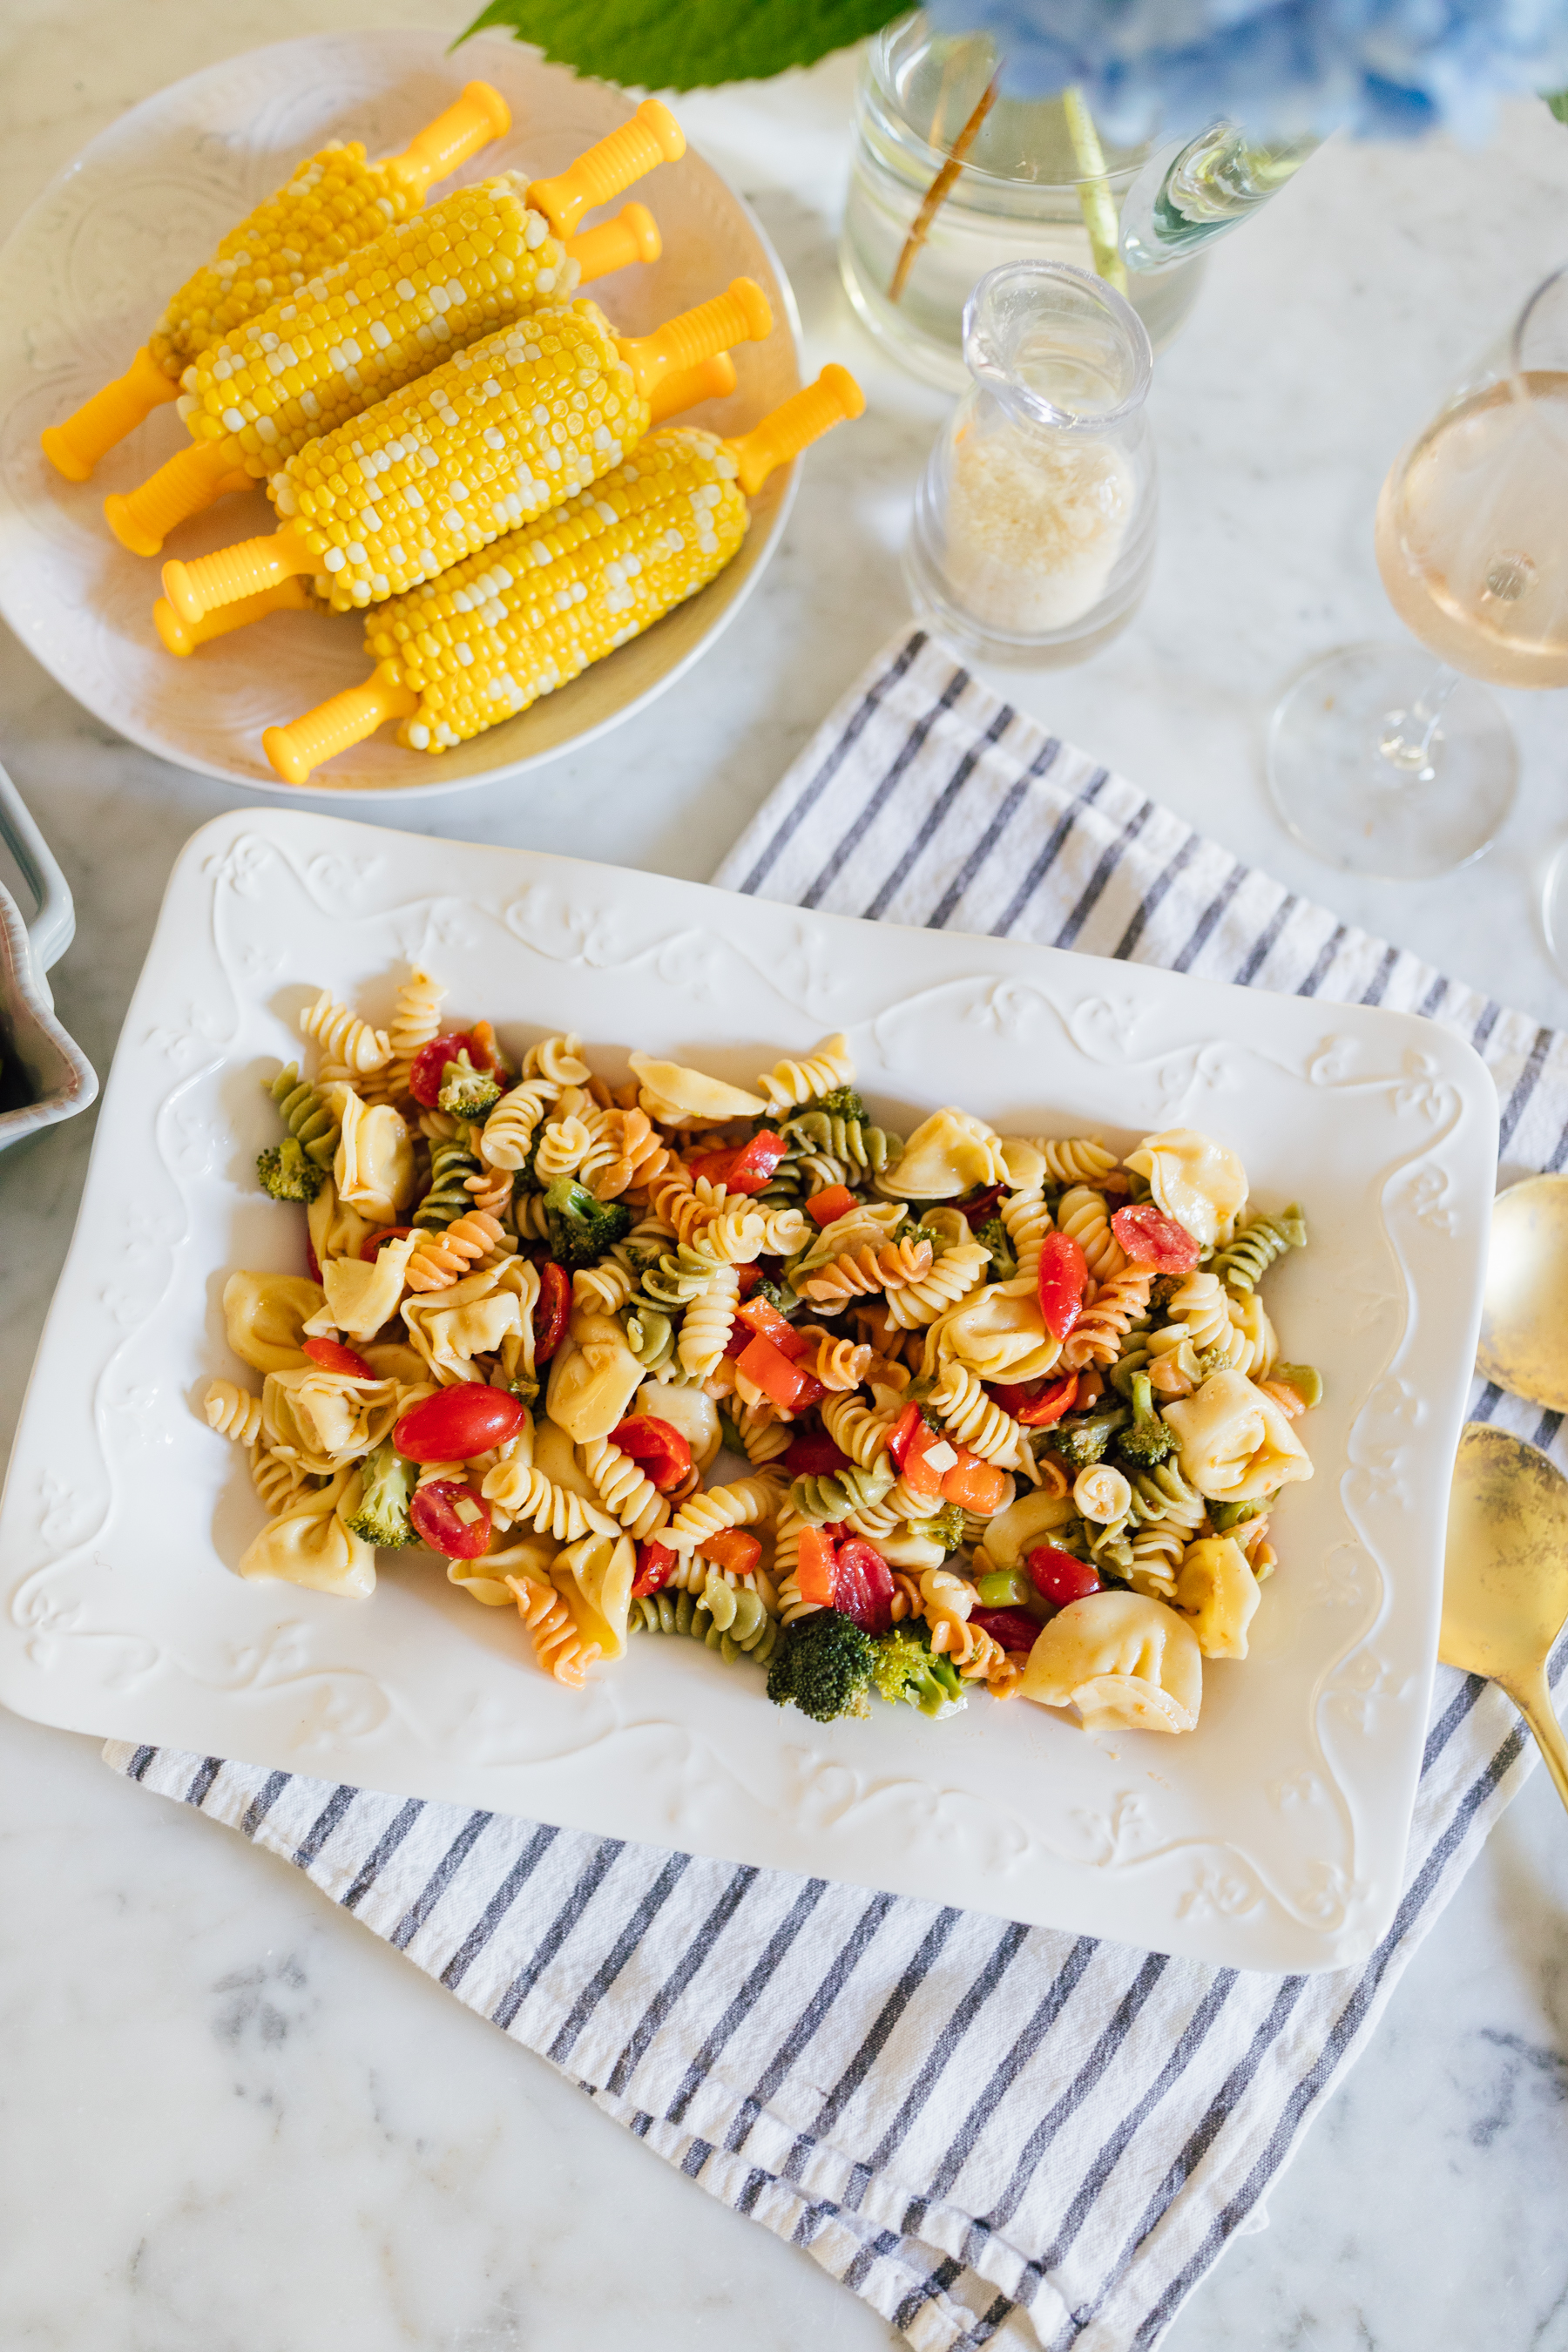 Lilies and Lambs Crowd Pleasing Pasta Salad